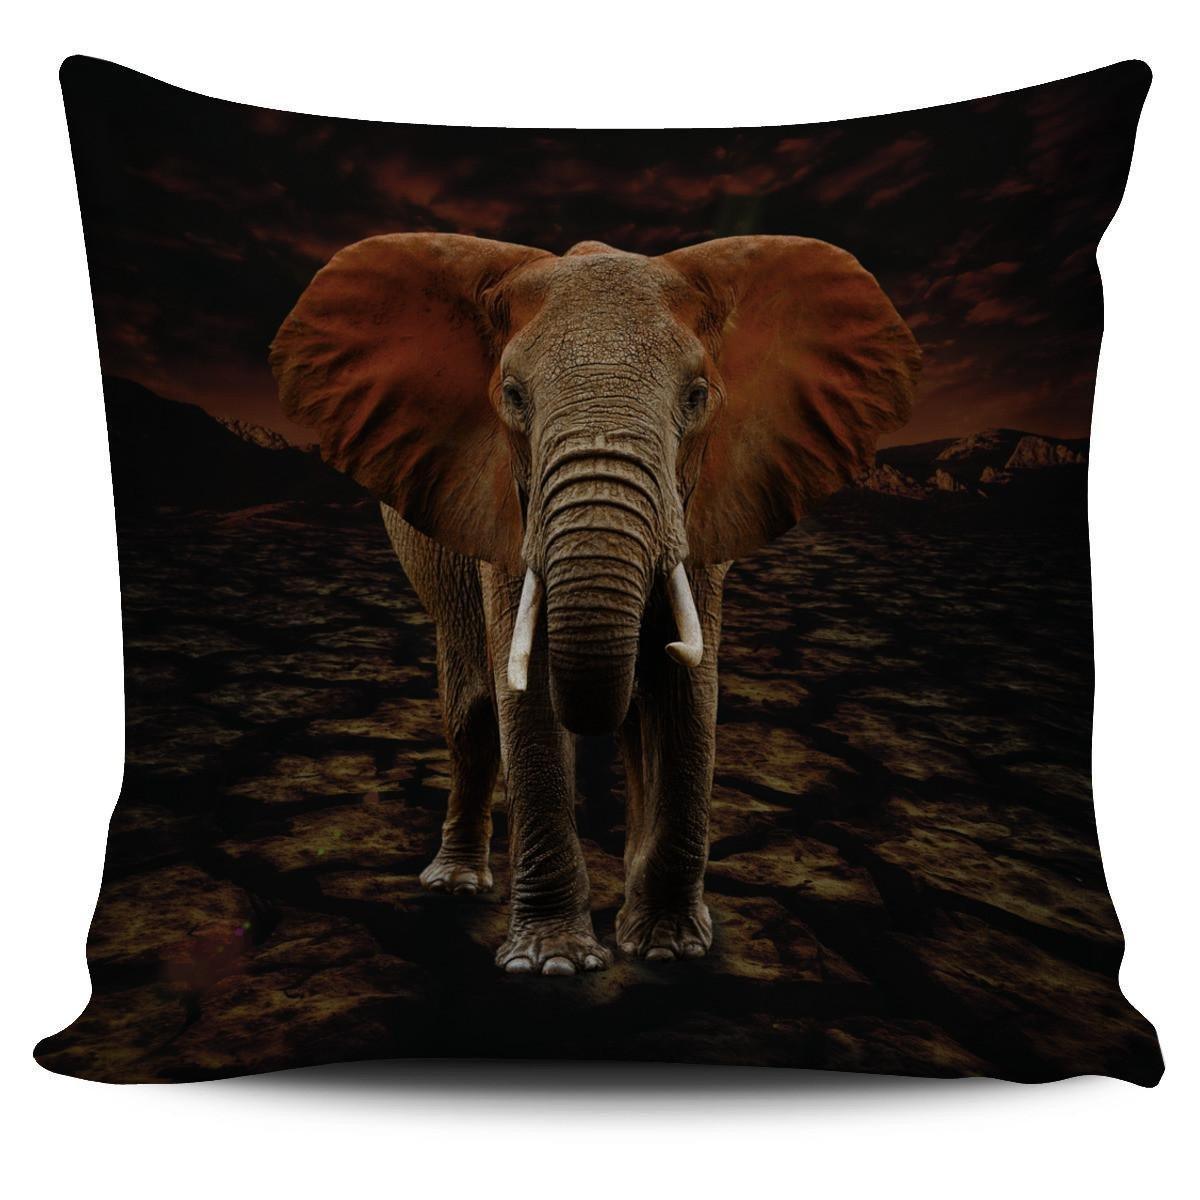 Elephant Pillowcases